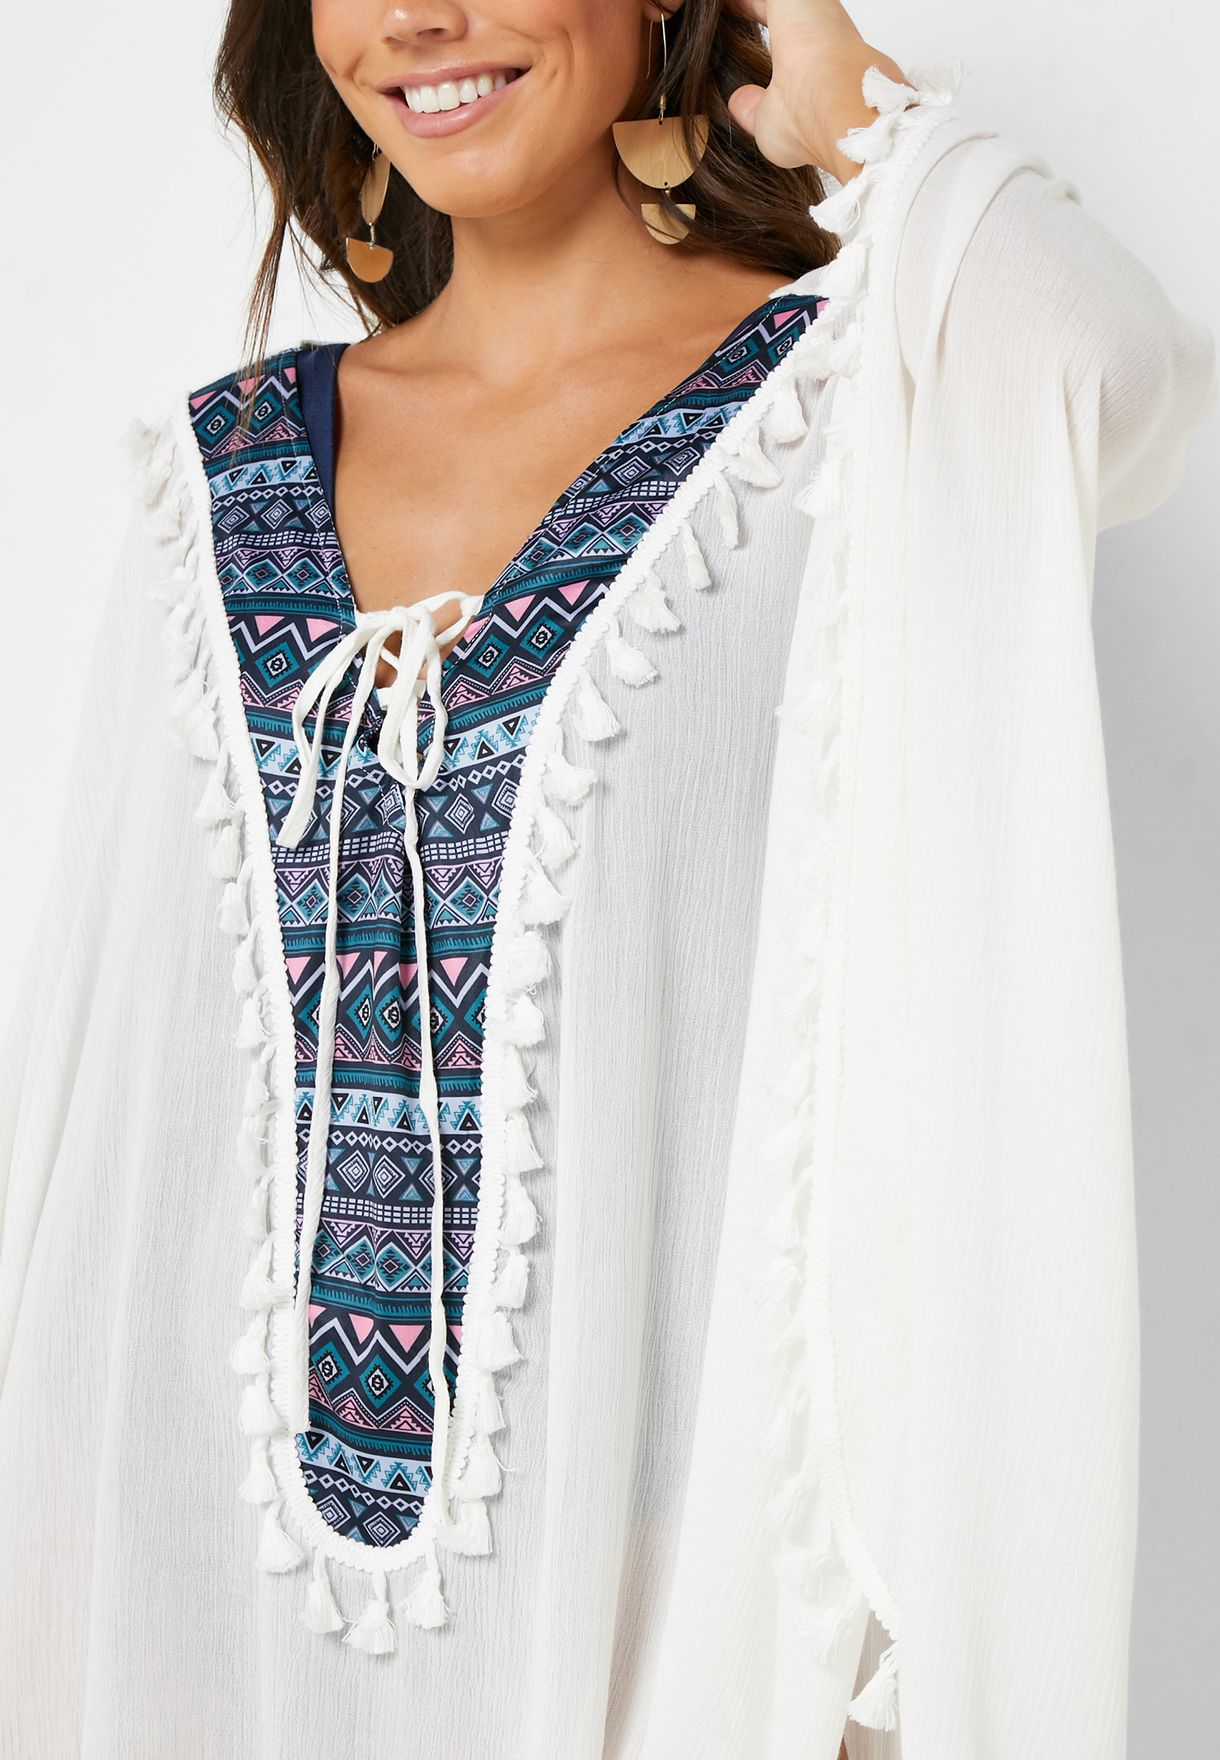 Tassel Detail Sheer Beach Dress